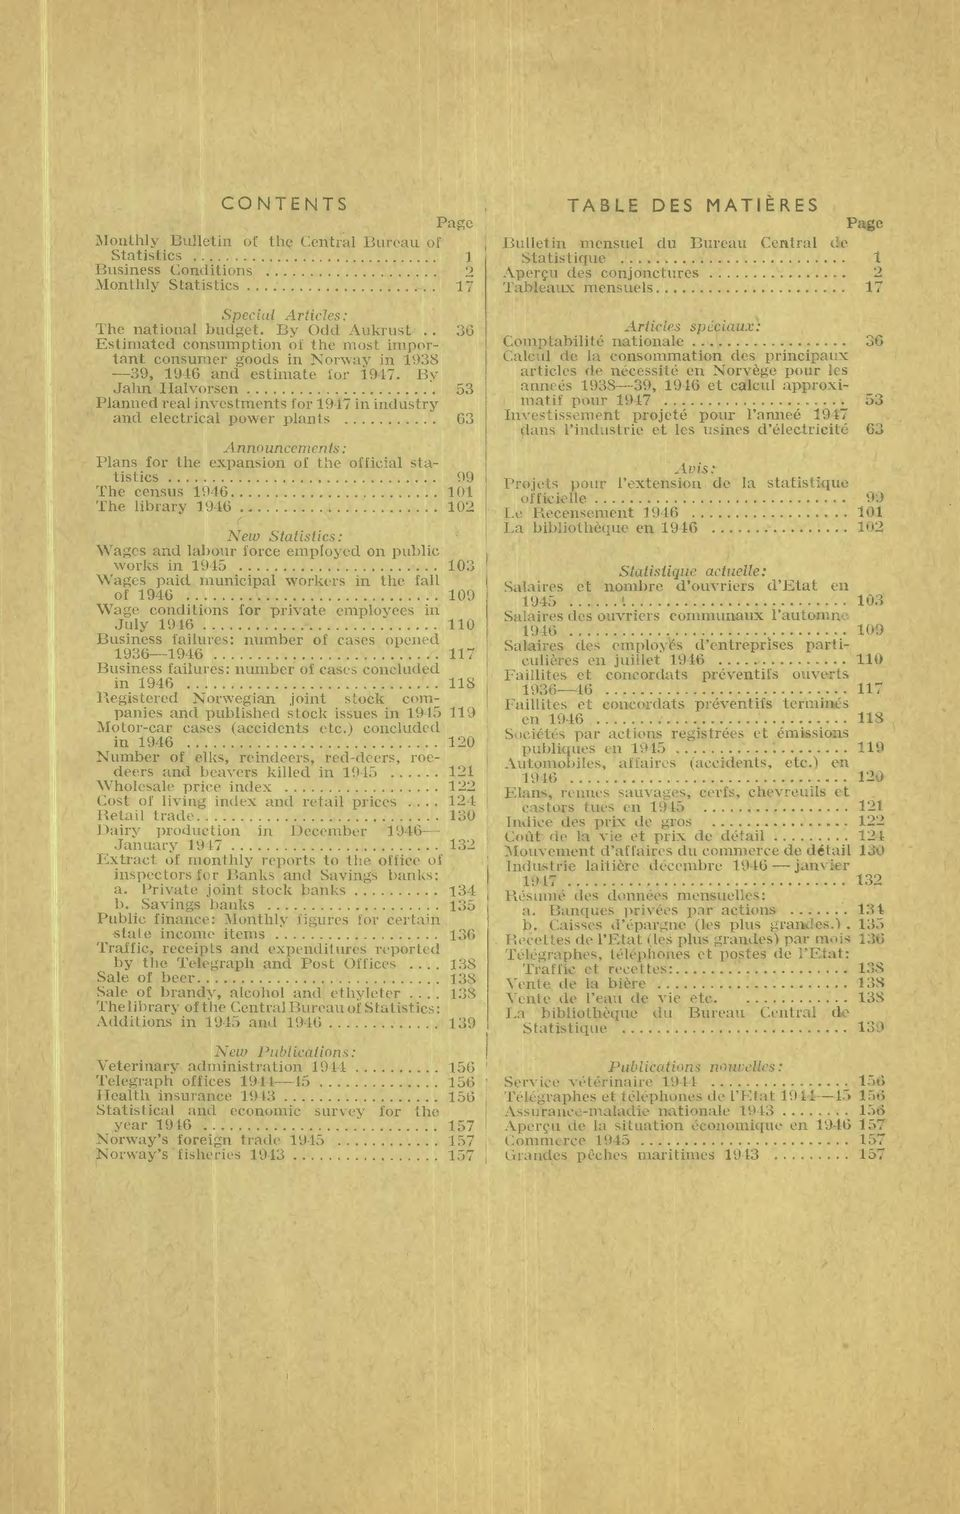 By Jahn Halvorsen 53 Planned real investments for 1947 in industry and electrical power plants 63 Announcements: Plans for the expansion of the official statistics 99 The census 1946 101 The library